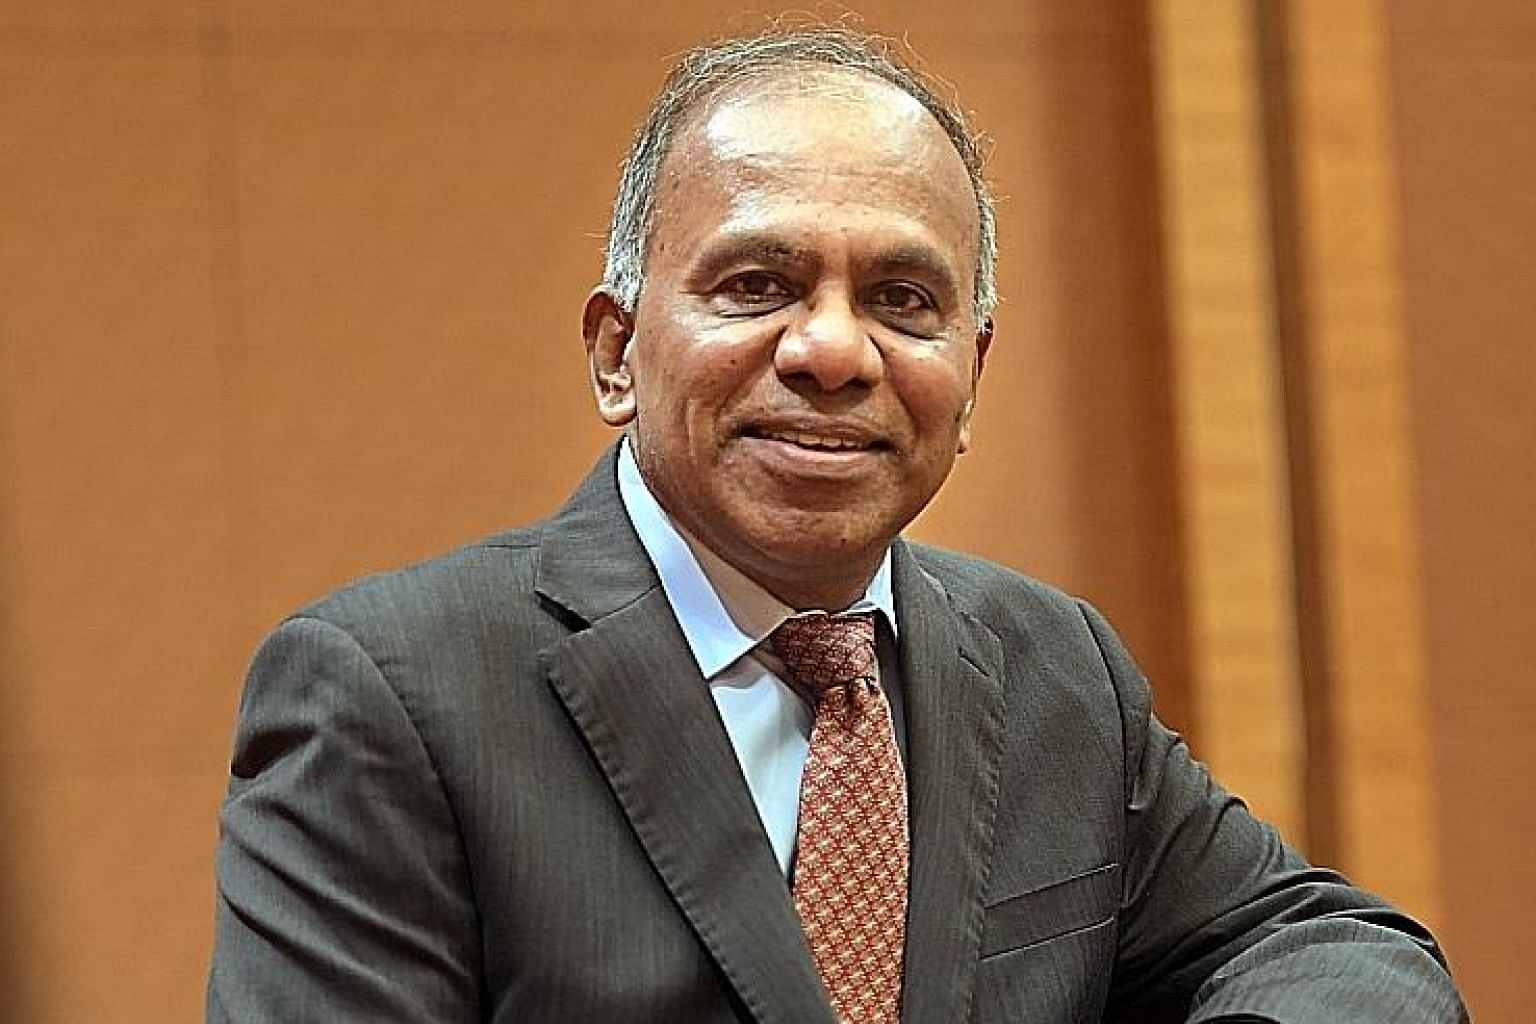 Professor Subra Suresh was president of Carnegie Mellon University when he was hired to lead Nanyang Technological University. He has some two dozen patent applications to his name. One area the new NTU president is pushing is artificial intelligence